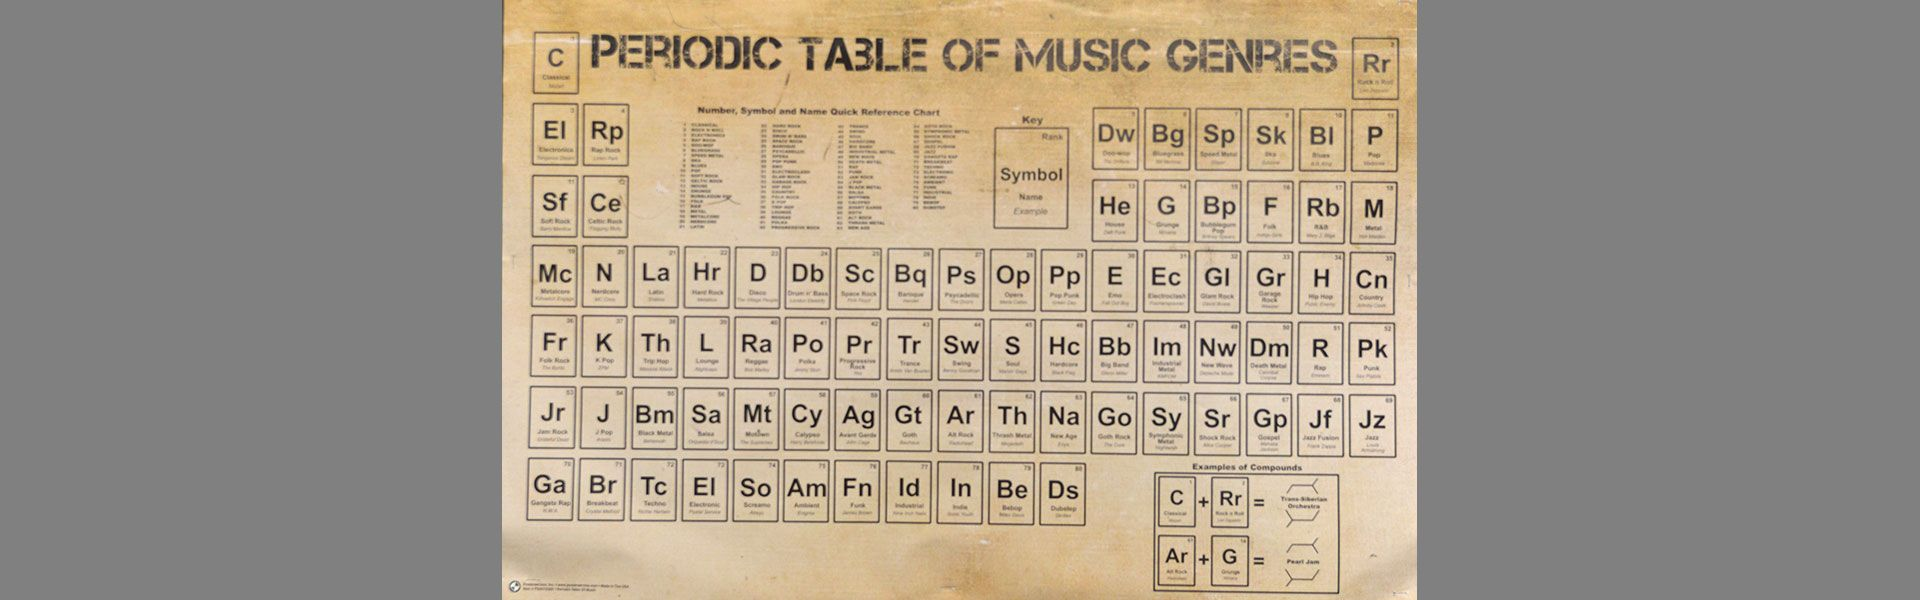 Music Genres Table